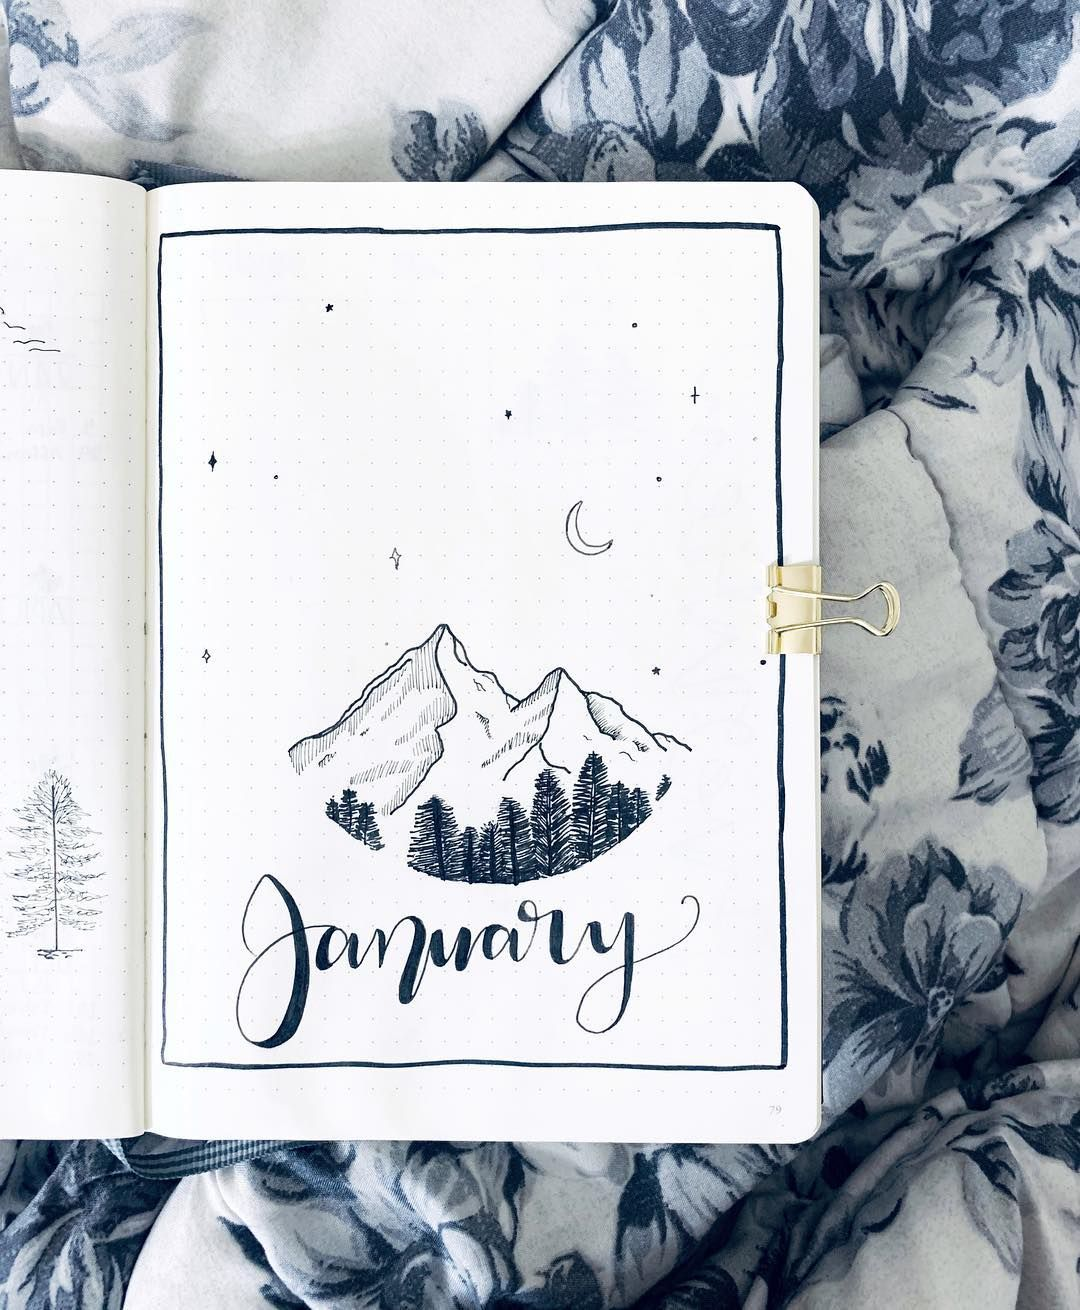 15 Lovely January Cover Ideas For Your Bullet Journal - Craftsonfire